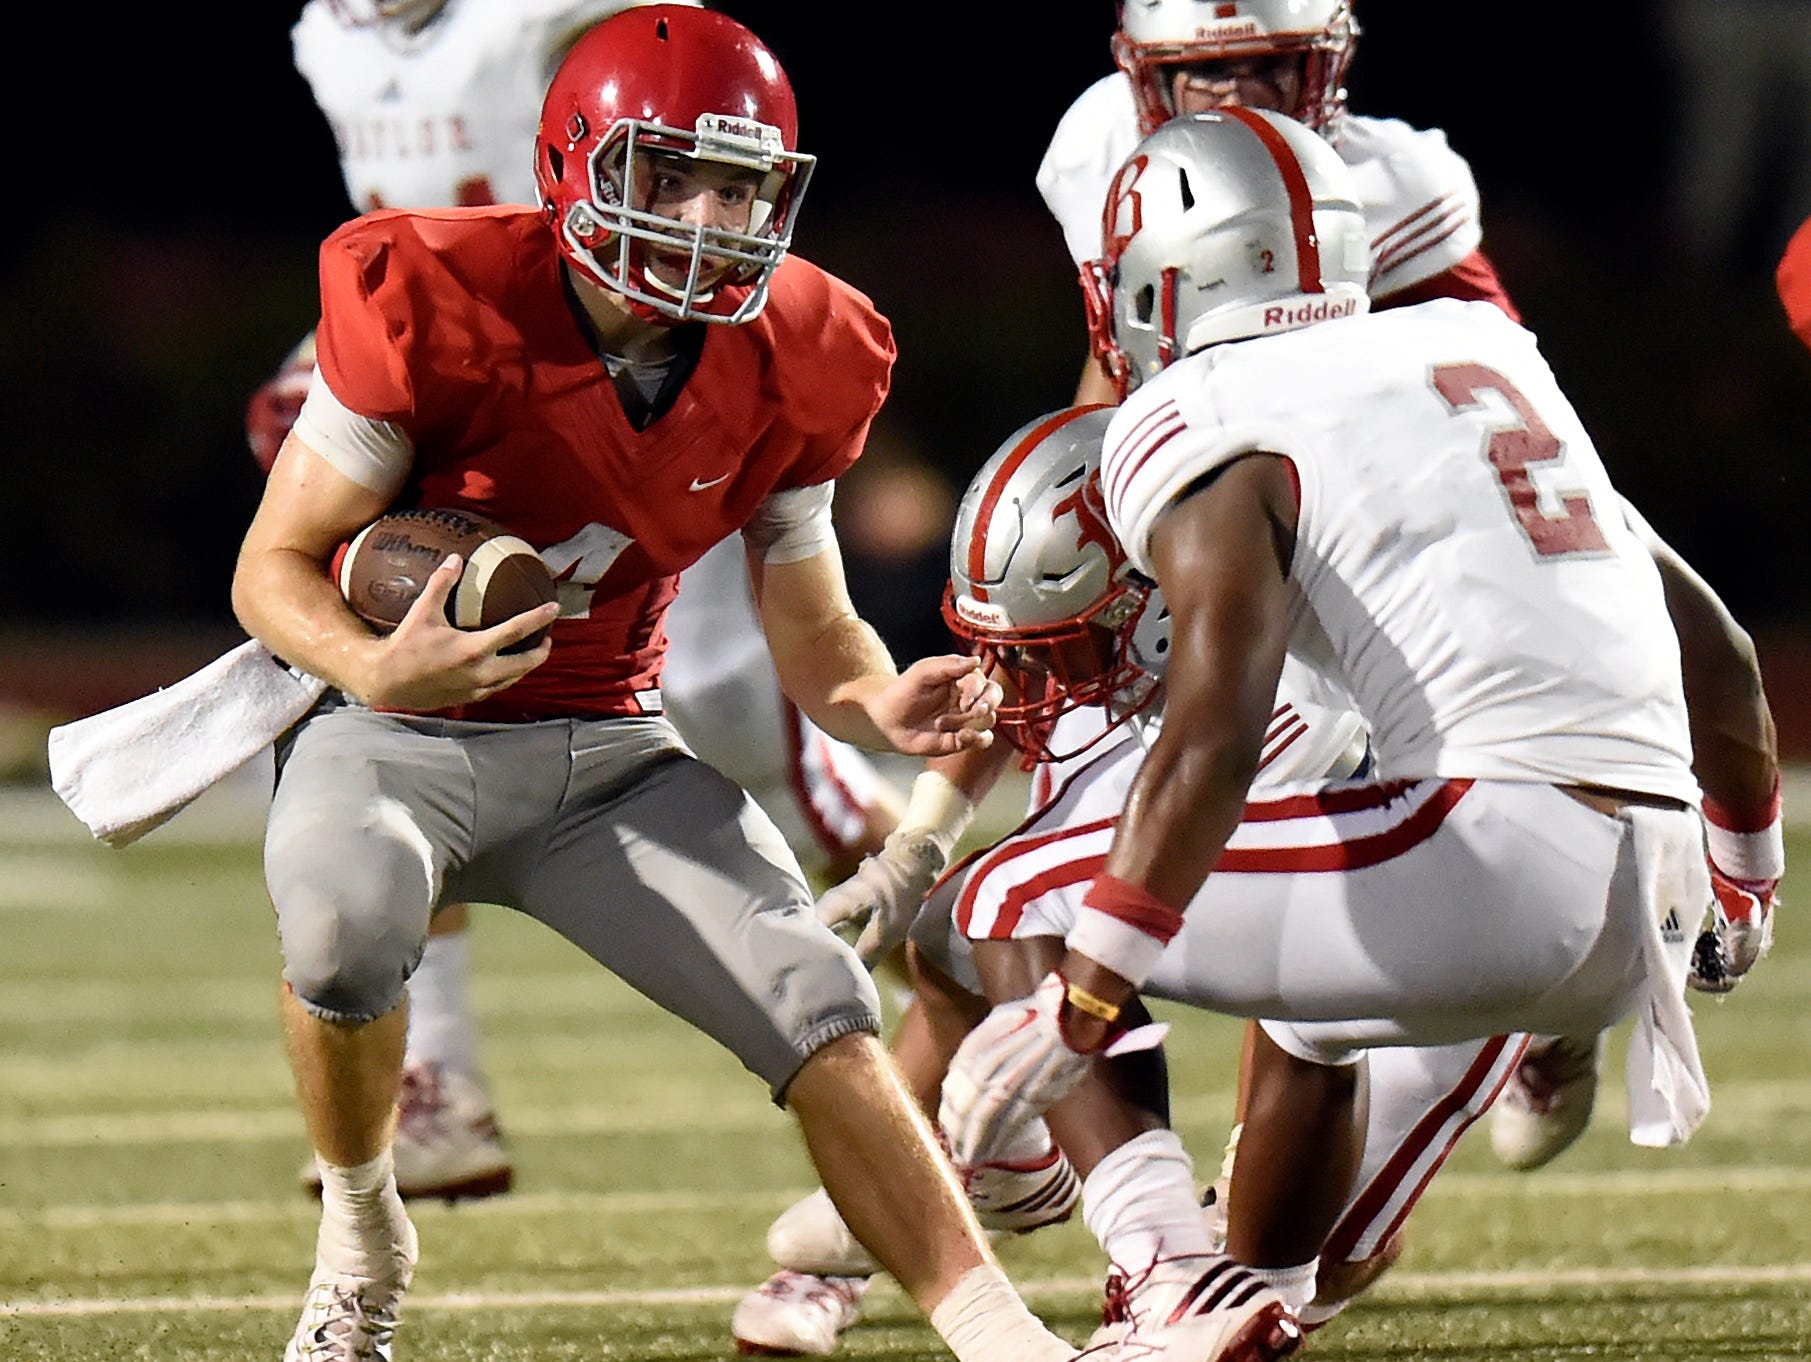 Brentwood Academy quarterback Jeremiah Oatsvall (4) runs the ball before being tackled by Baylor cornerback Brendon Harris (2) during second half of an high school football game on Friday, Sept. 16, 2016, in Brentwood, Tenn. Brentwood Academy won 35-0.